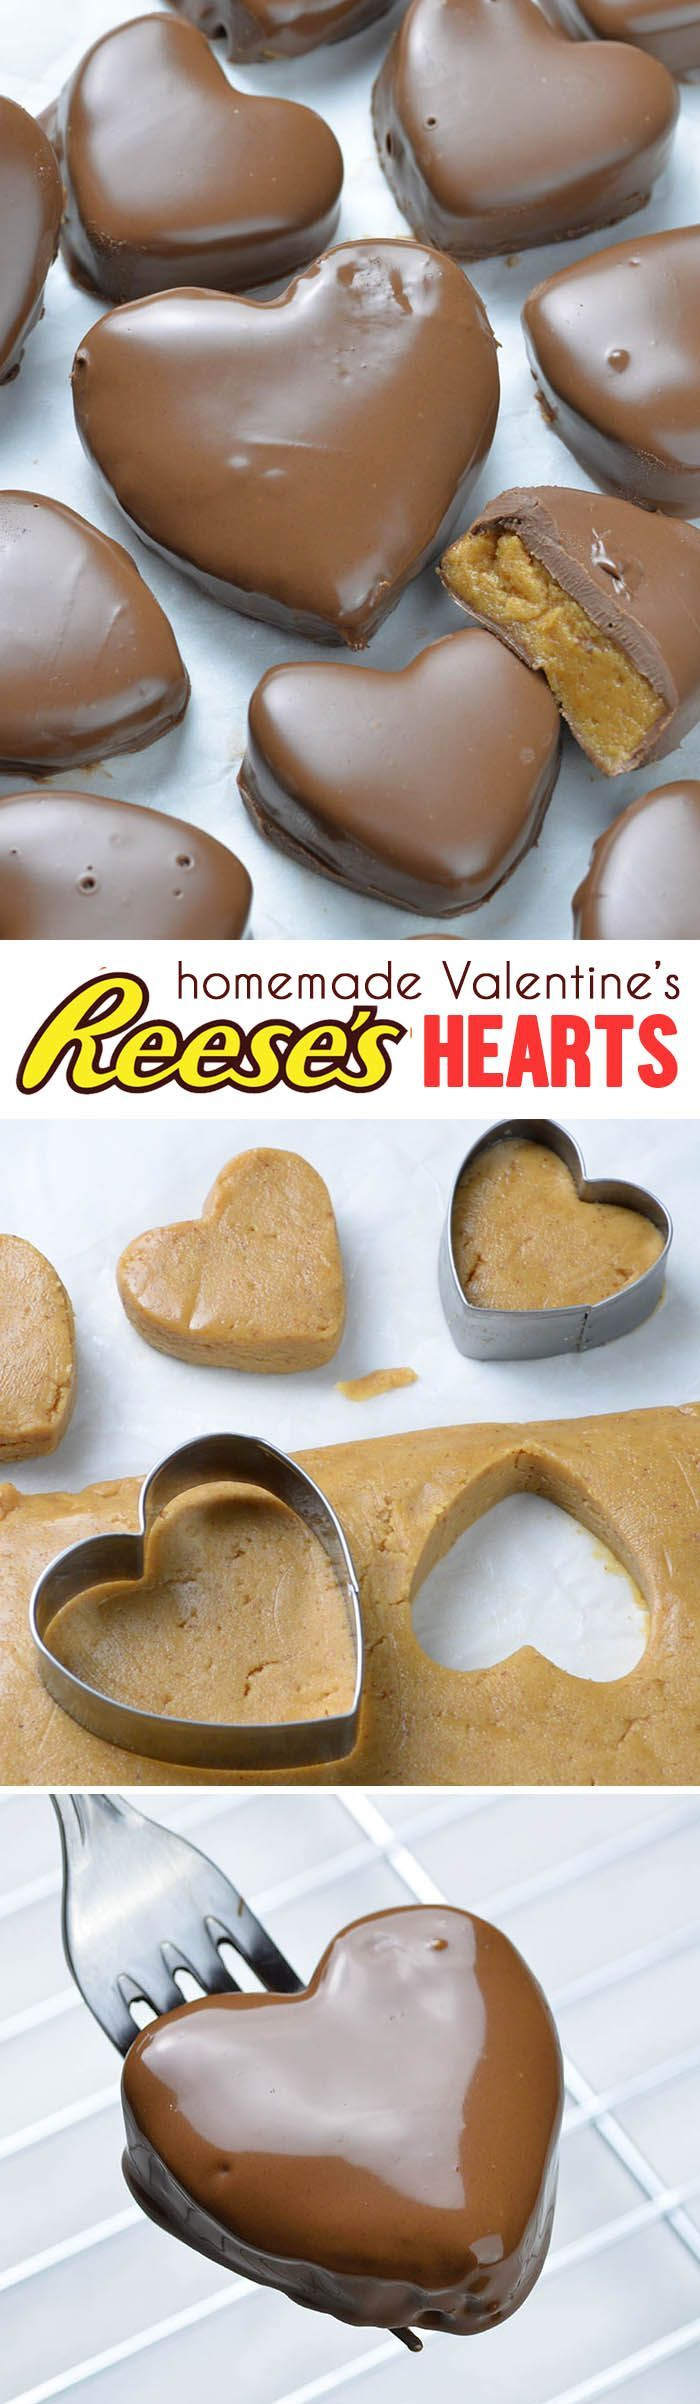 92cea75510b9a2cac03dbc7f5860a7c8 - This Reese's Peanut Butter Valentine's Heart recipe is super simple and easy...